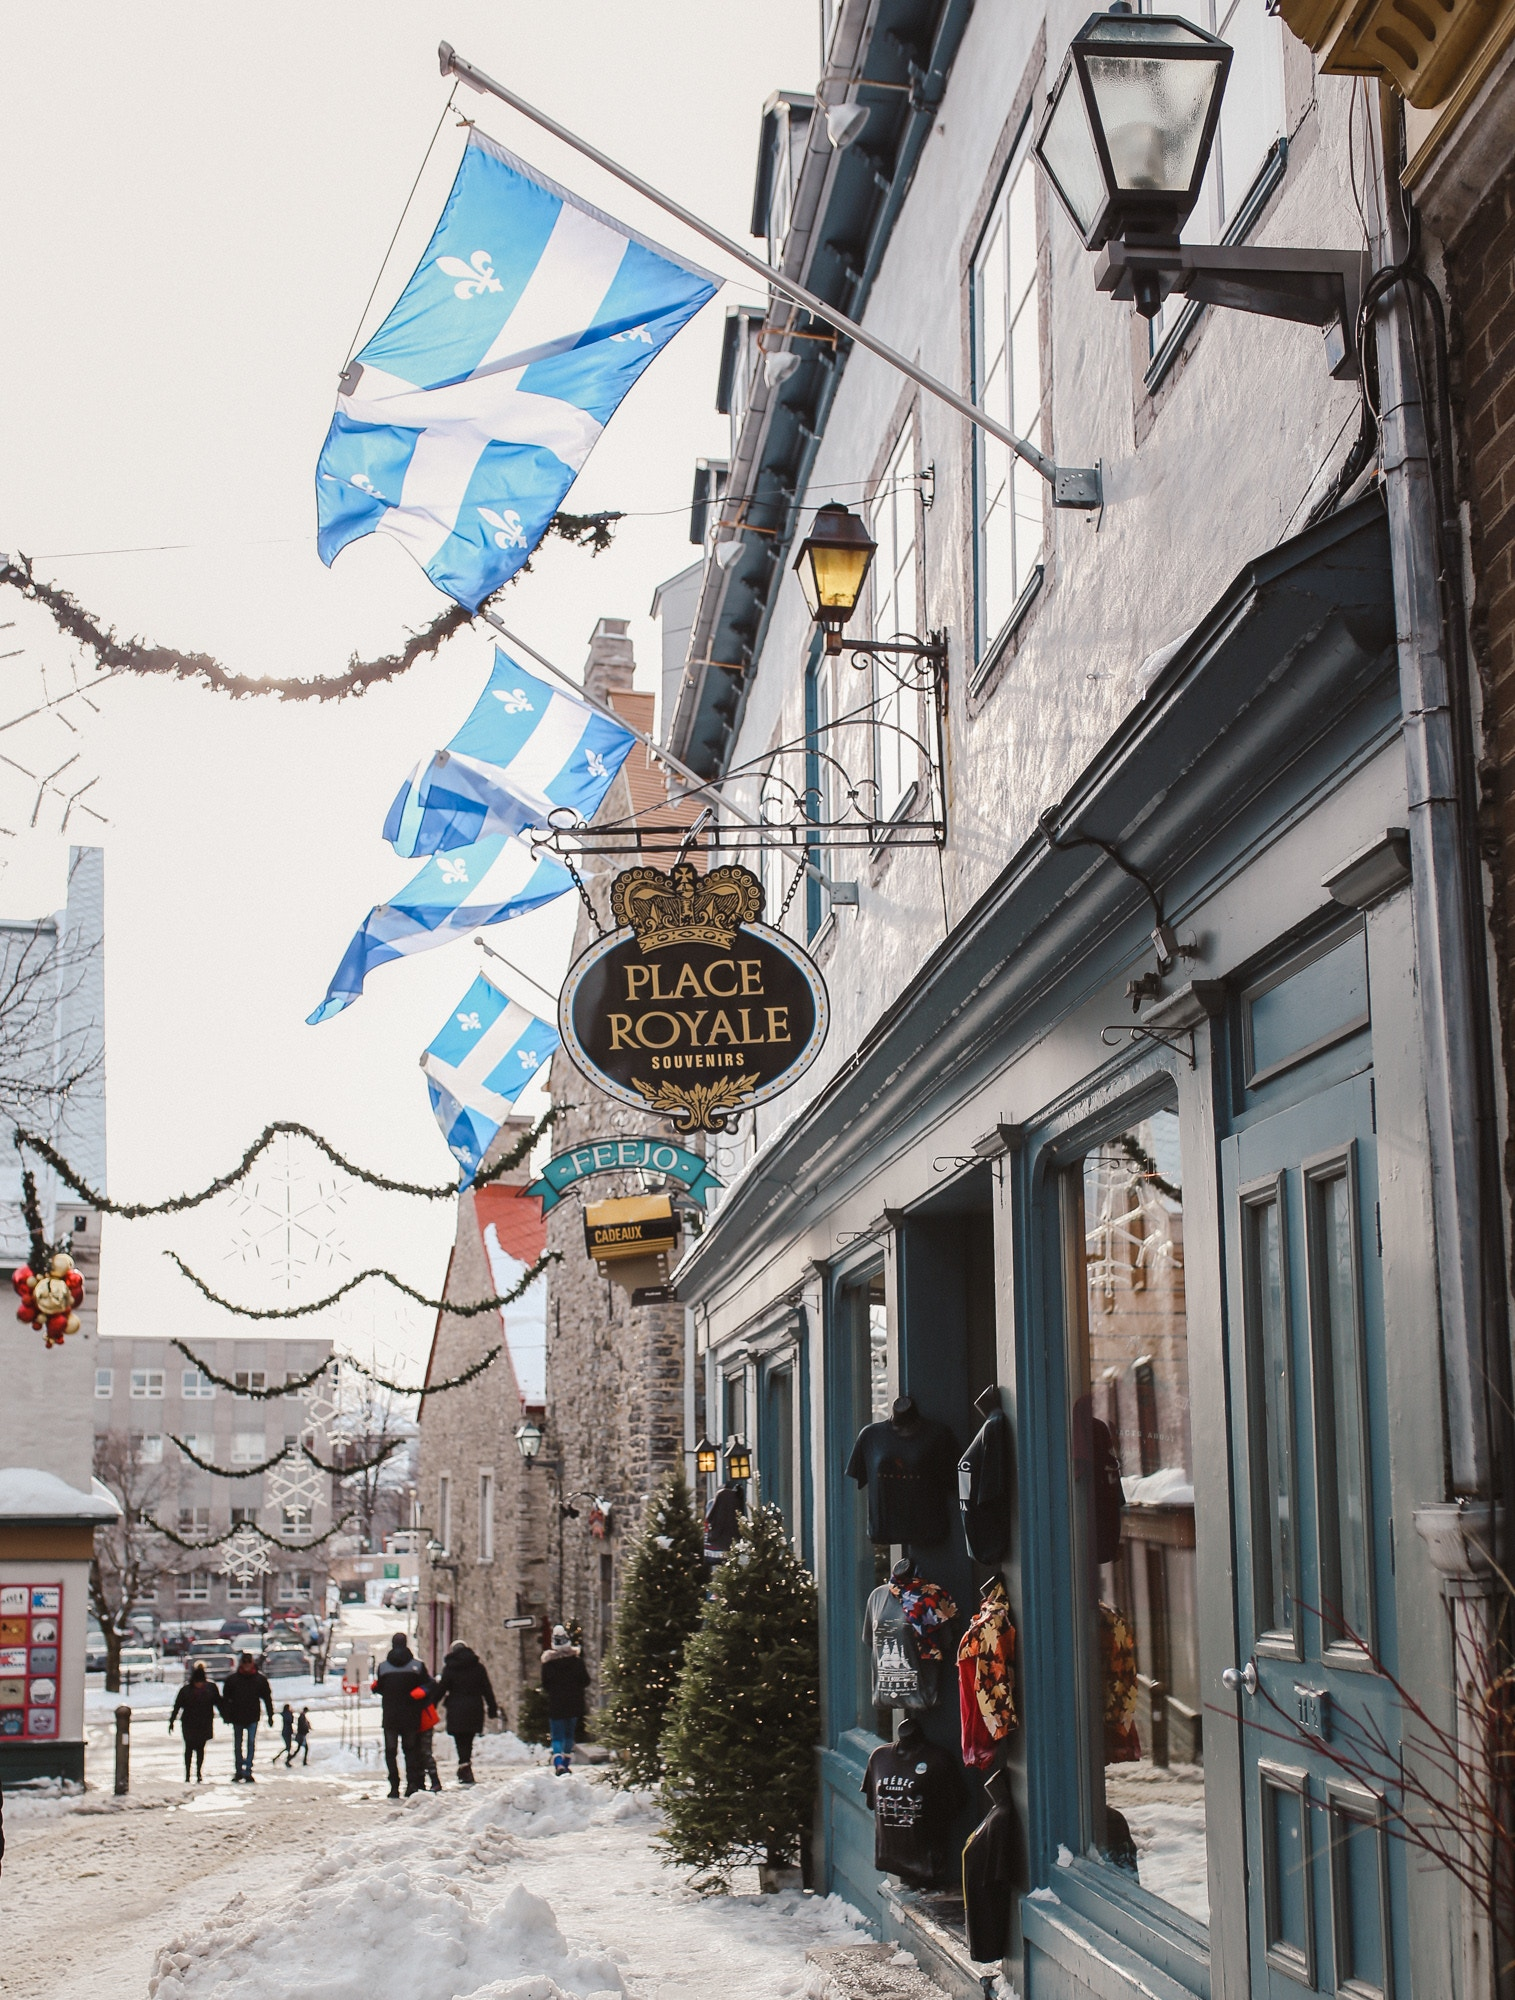 Quartier Petit Champlain in Quebec City is home to charming shops, restaurants and boutique hotels. See why it's at the top of my list as the top 10 things to do in Quebec City in winter.